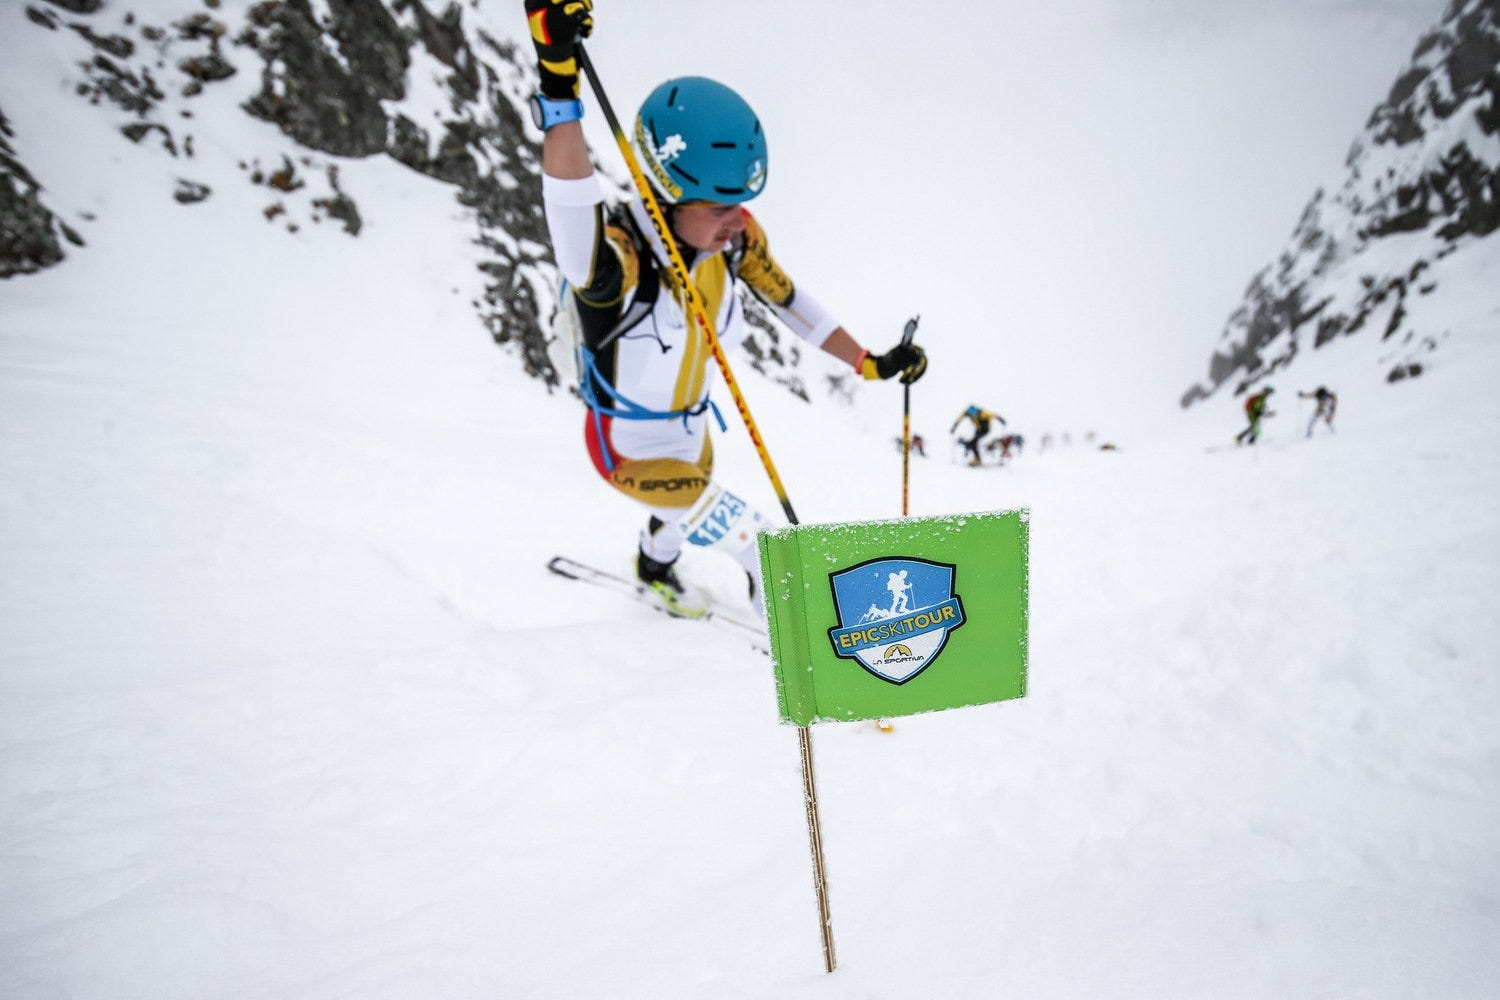 Epic Ski Tour: the two-day event dedicated to skialp by La Sportiva, returns to Val di Fiemme